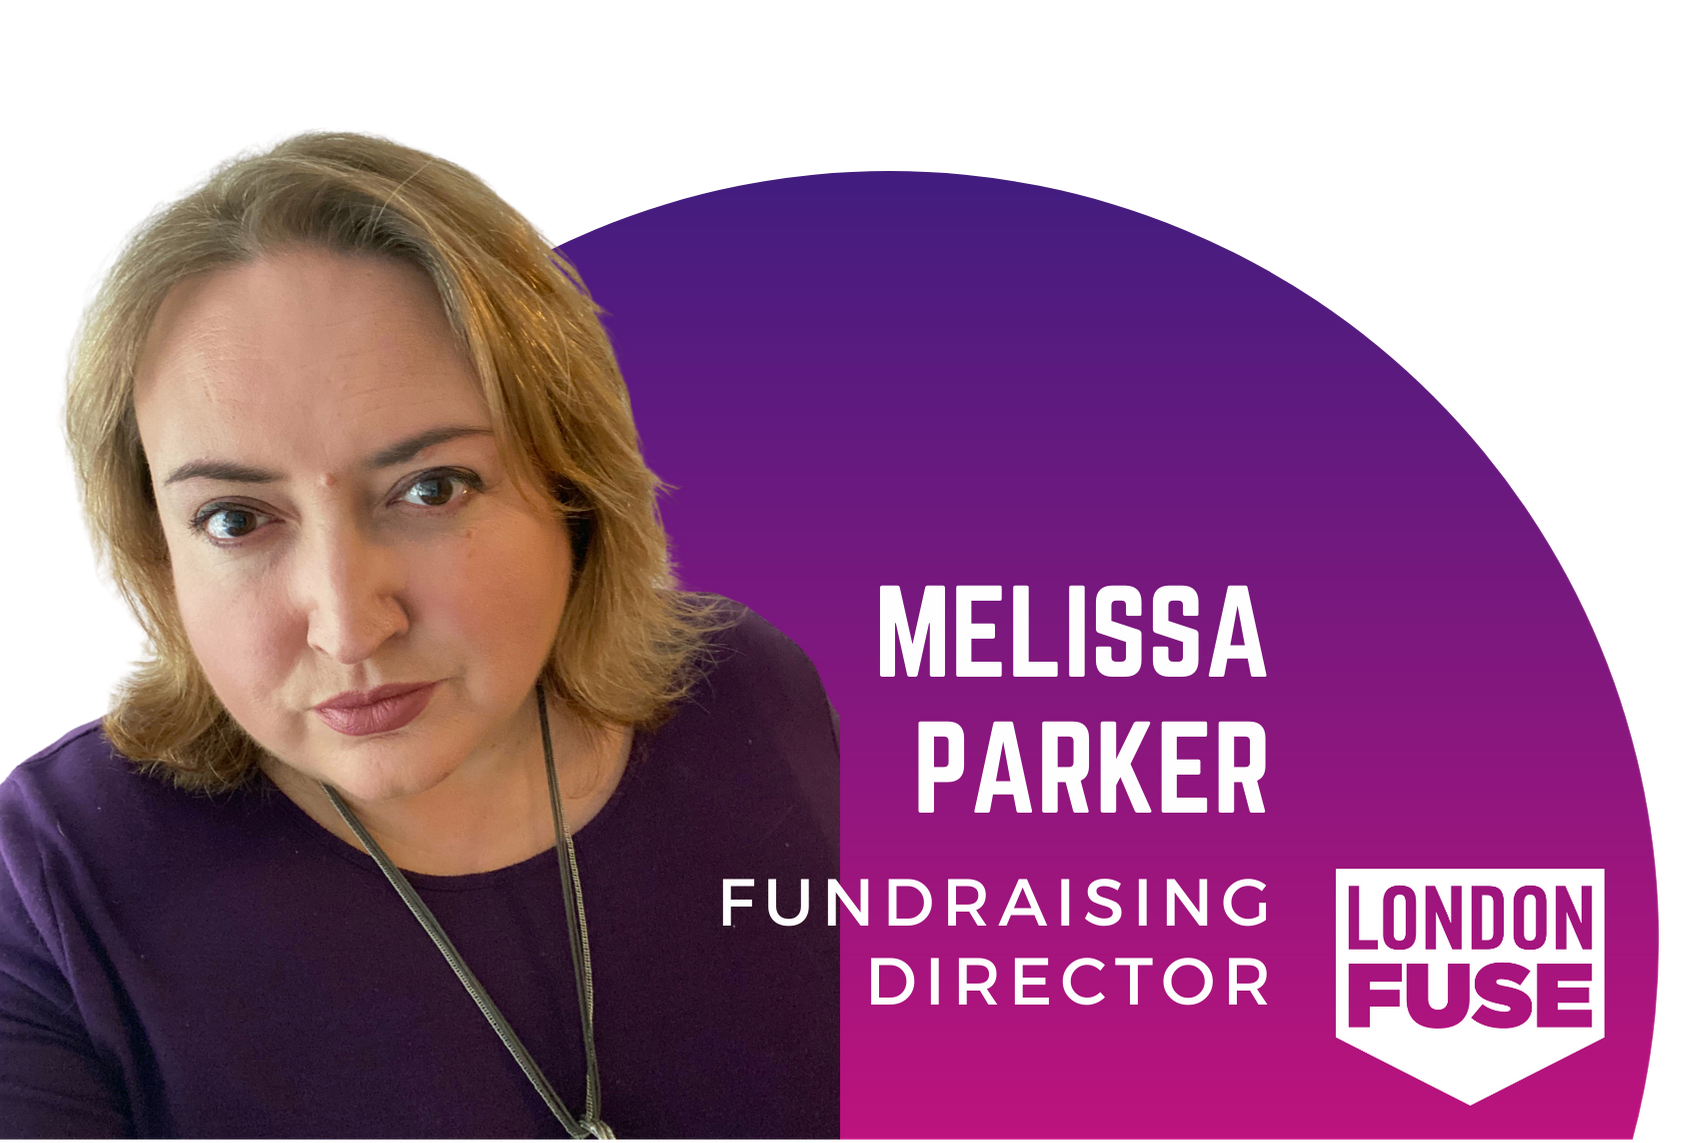 """A blonde woman looks directly at the camera. She is wearing purple. The text beside her says """"Melissa Parker Fundraising Director"""""""